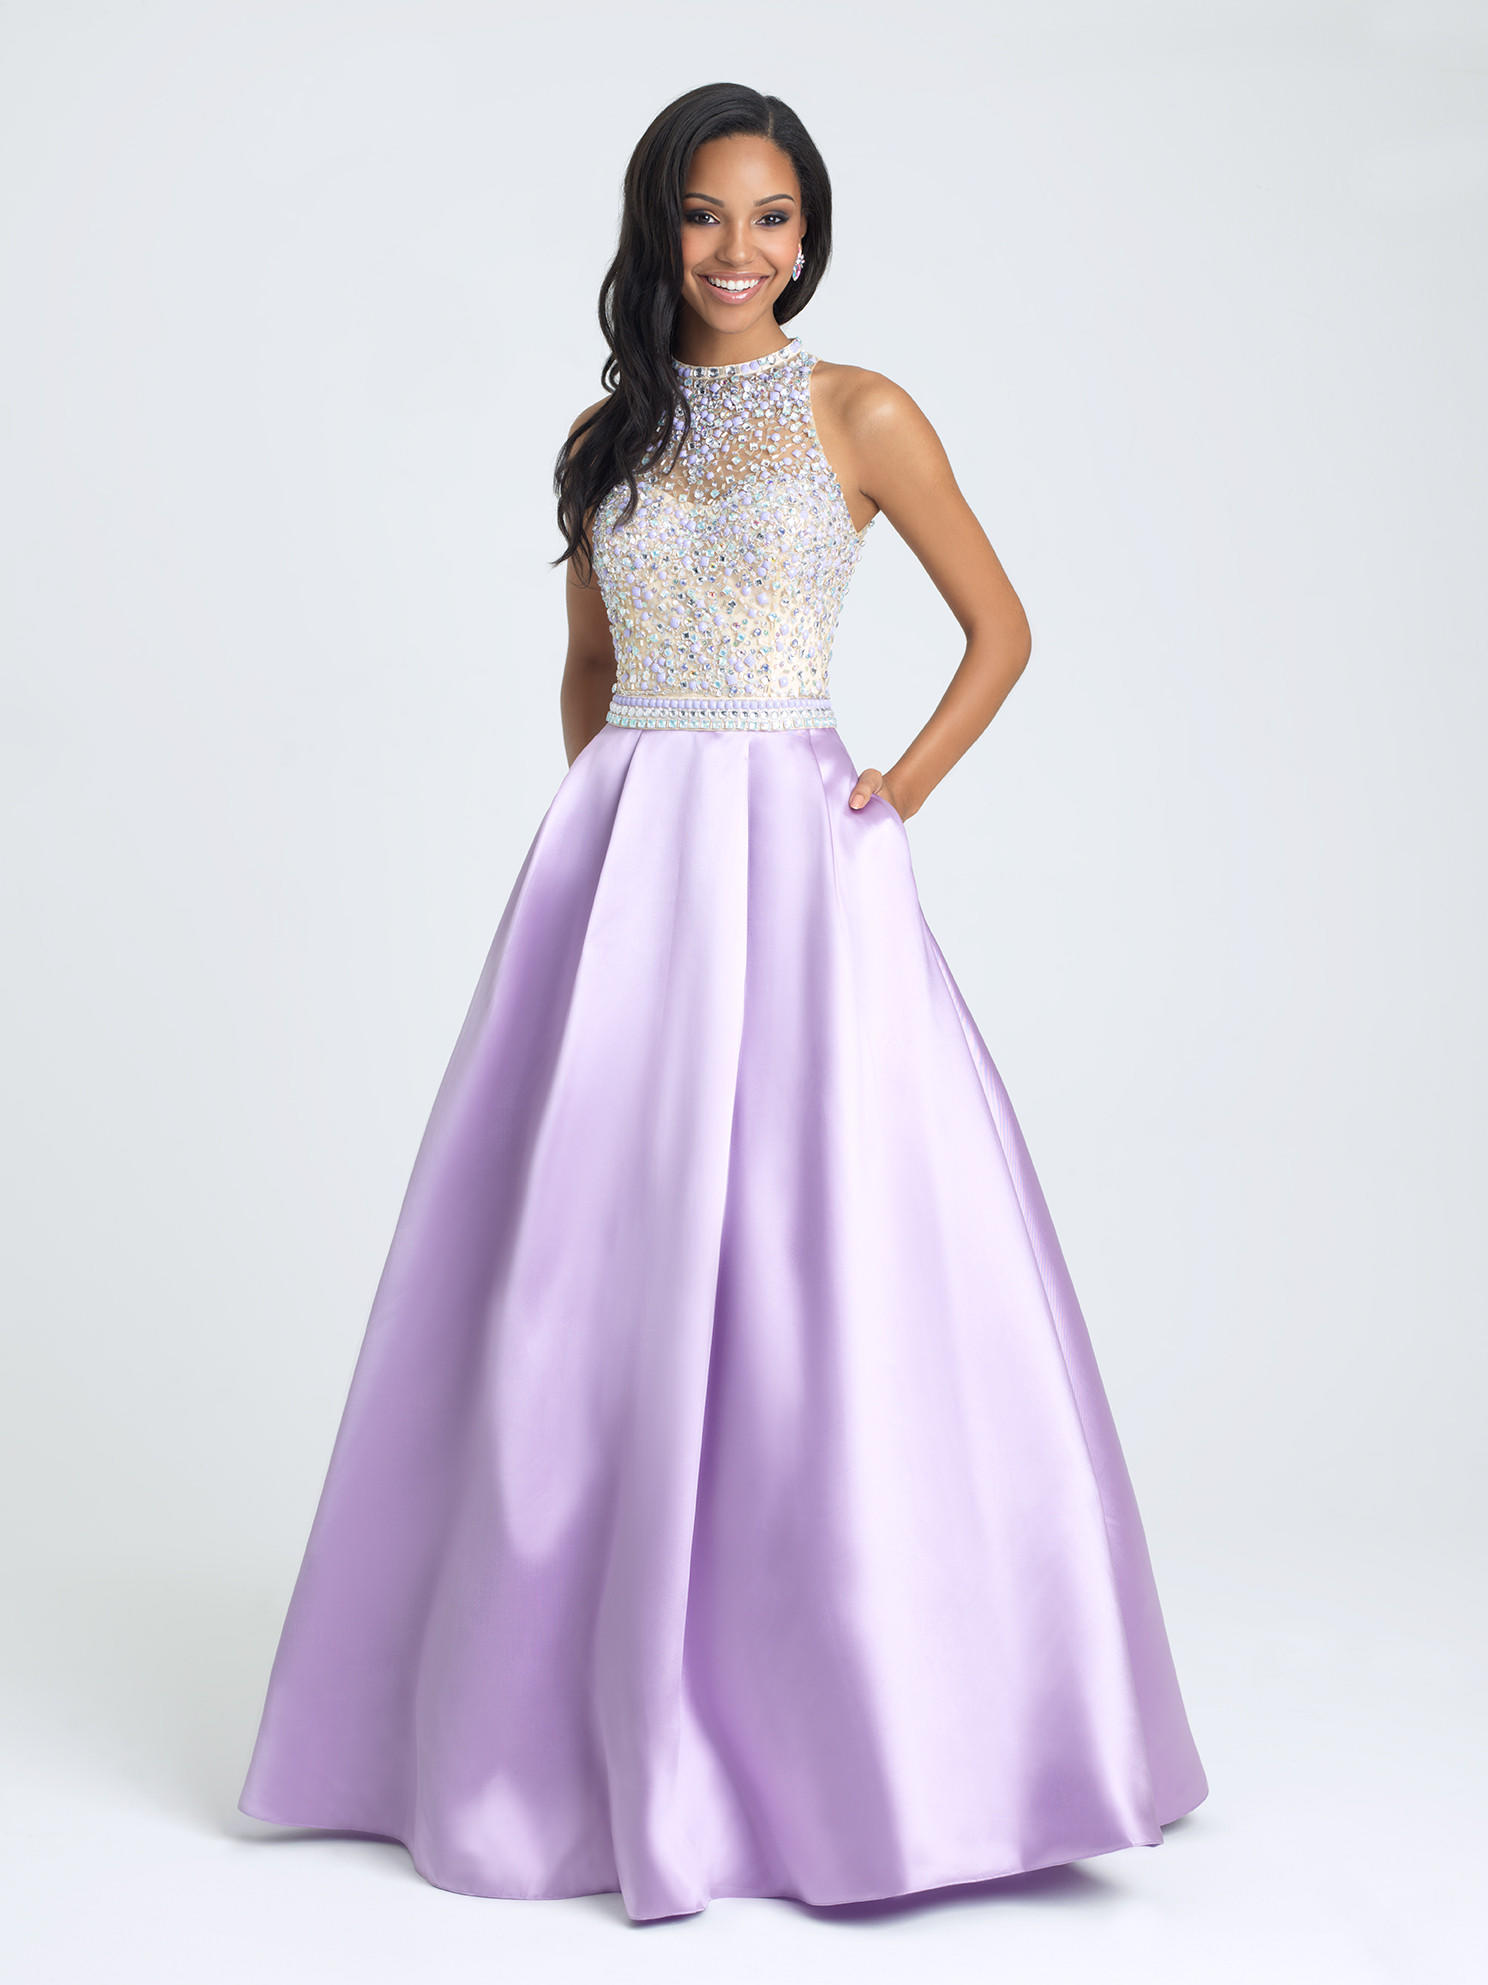 Prom Dresses Madison Wi | Cocktail Dresses 2016